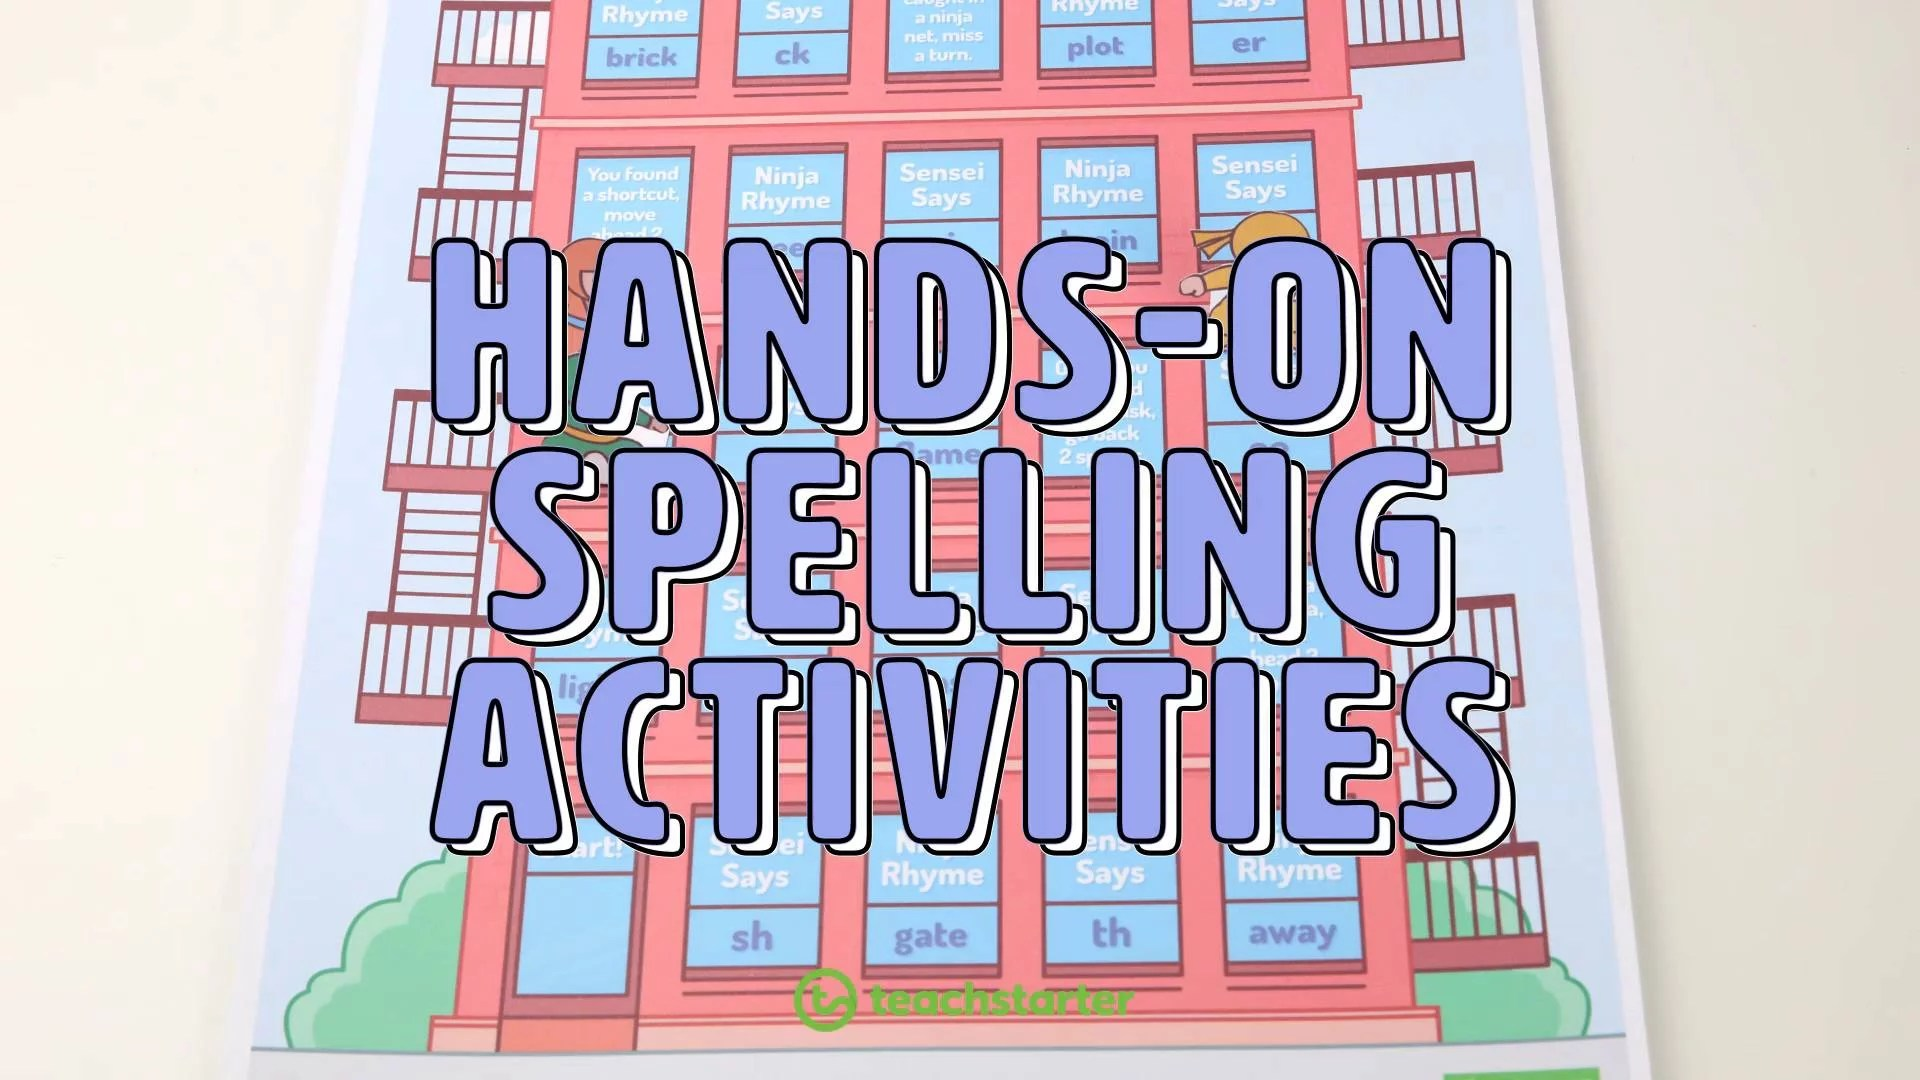 medium resolution of 14 Fun Spelling Activity Ideas to Use in the Classroom   Teach Starter